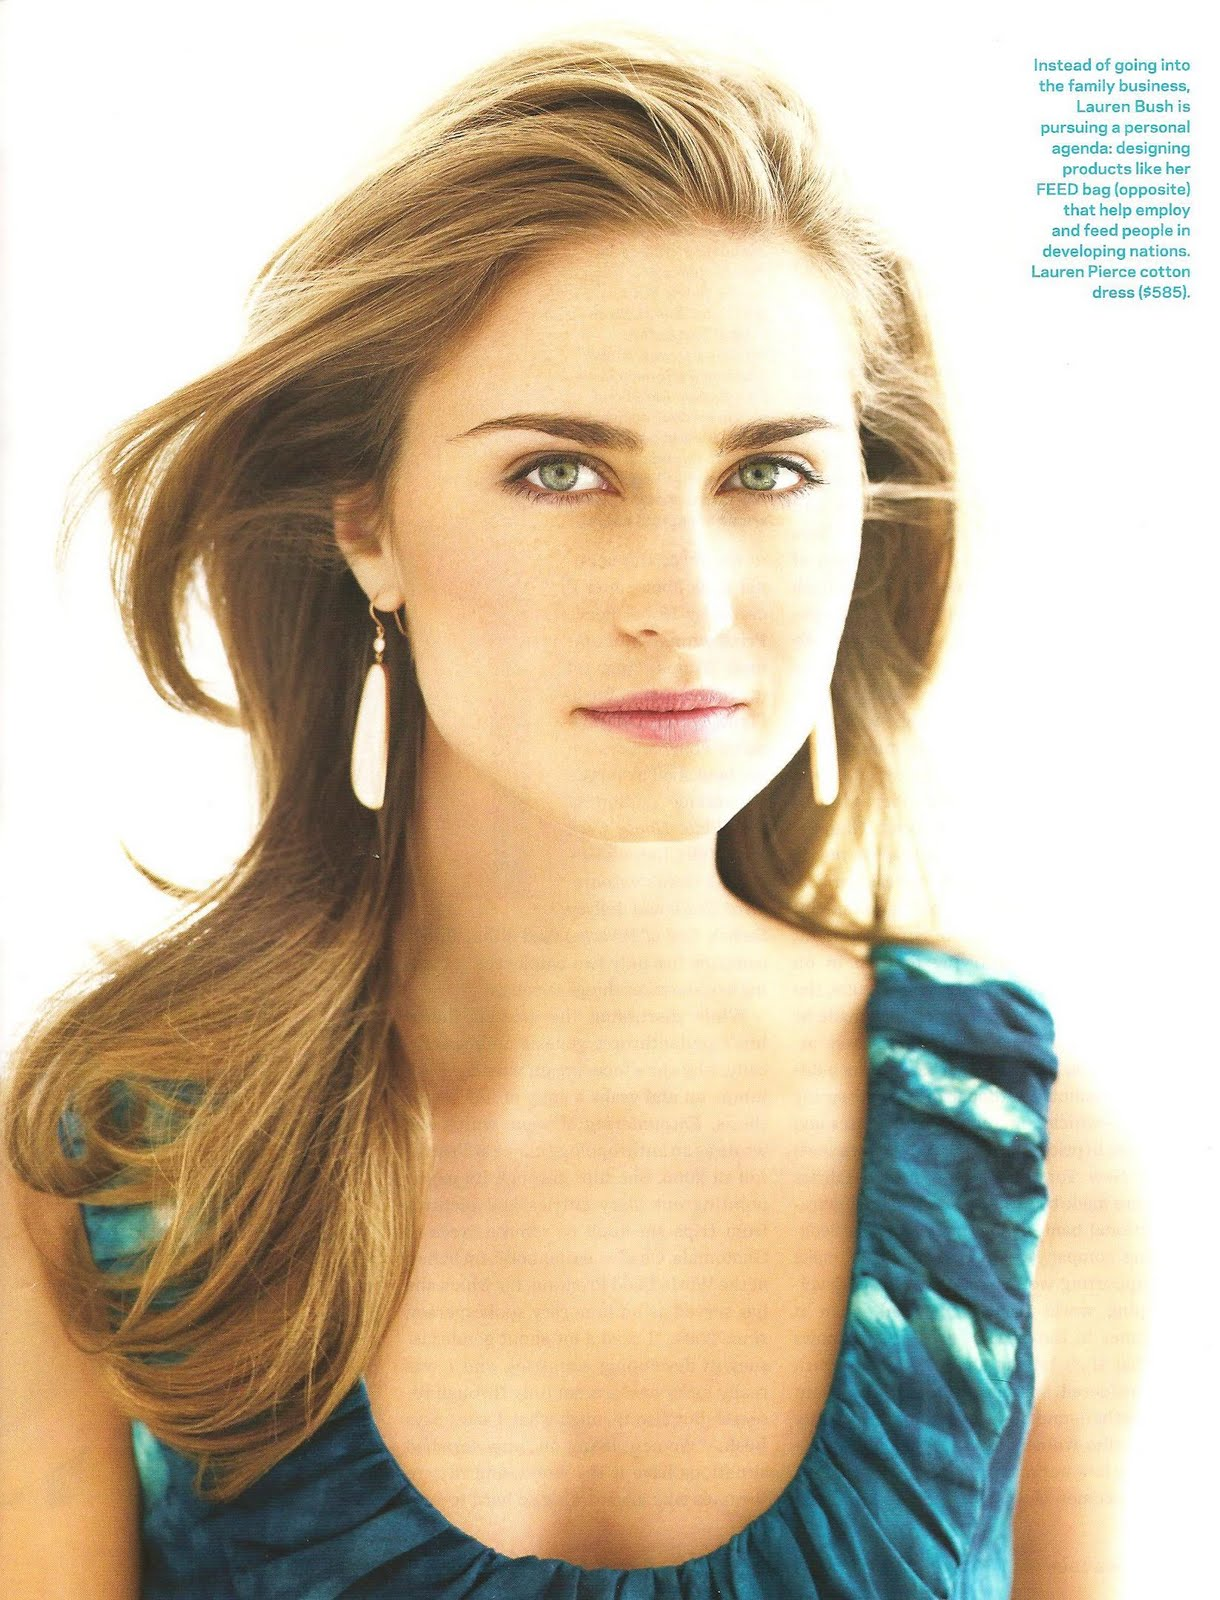 lauren bush lauren - photo #20